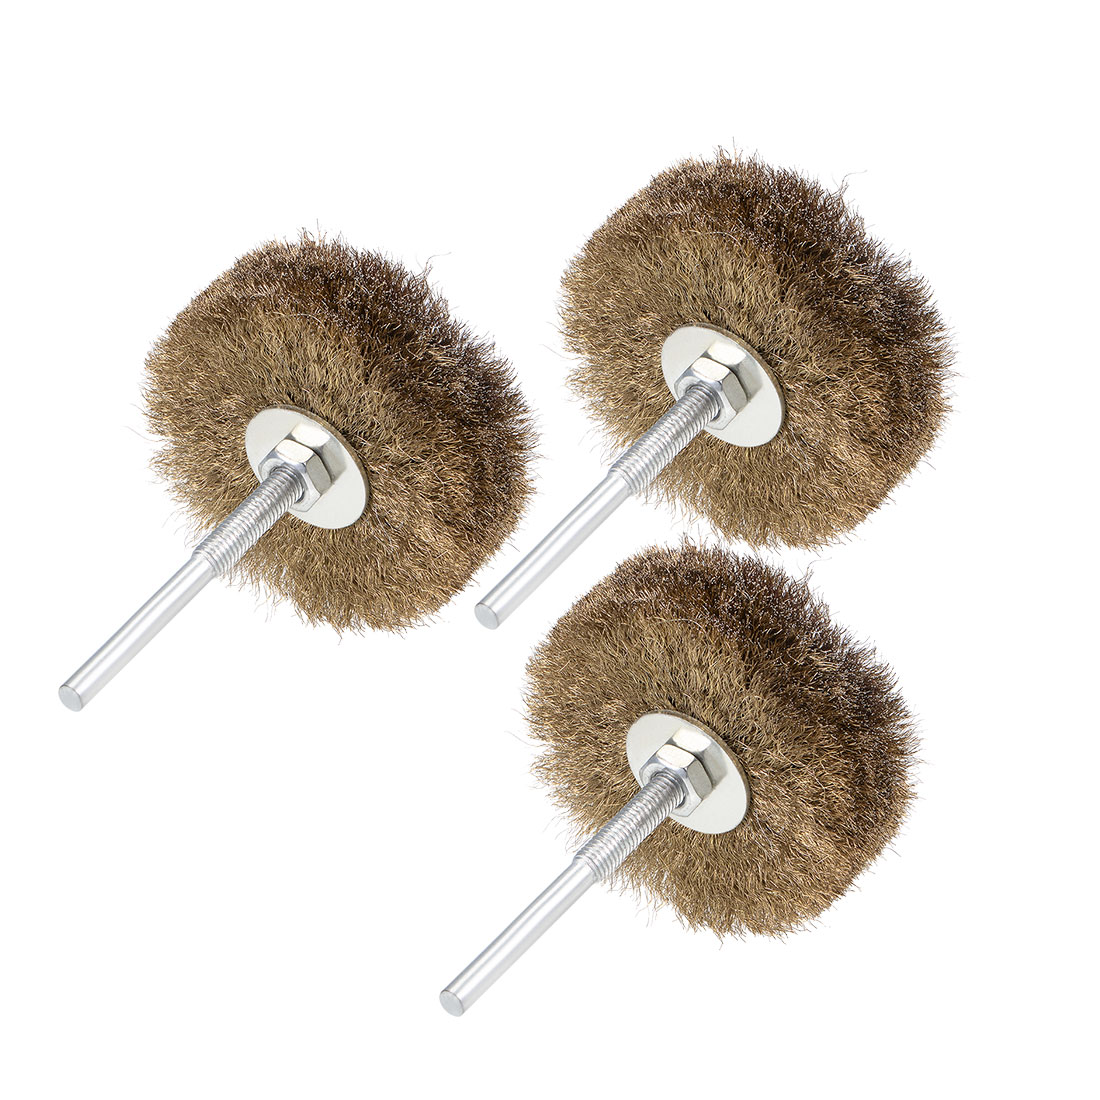 80mm Wire Wheel Brush Bench Brass Plated Crimped Steel w 1/4-Inch Shank 3 Pcs